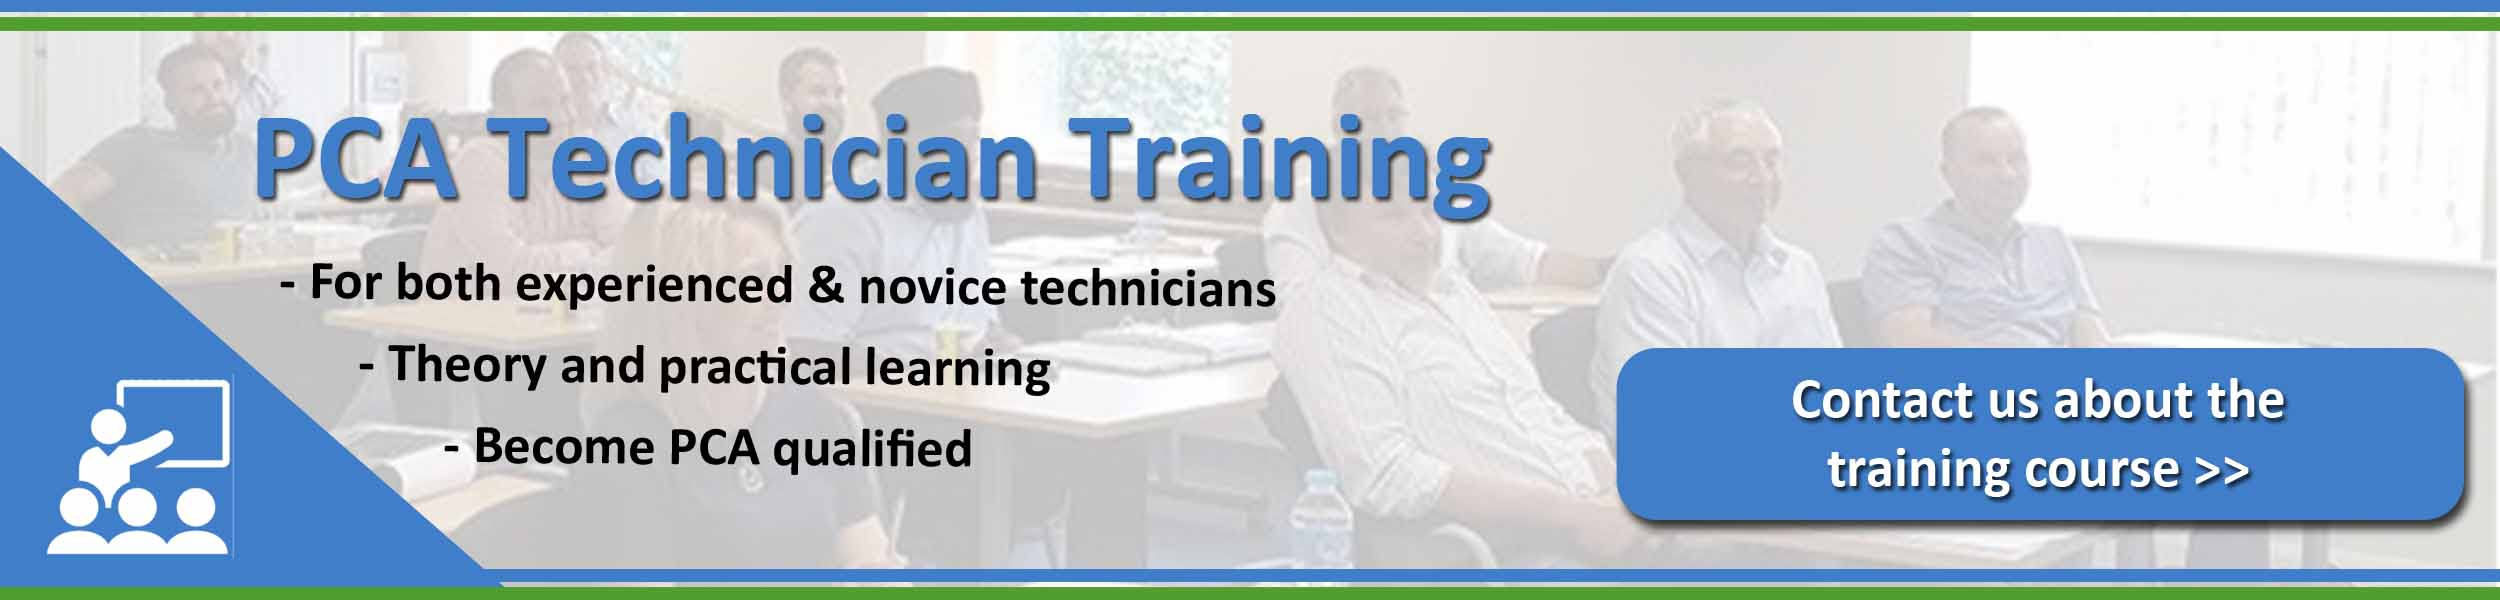 Technician Training - Property Care Association